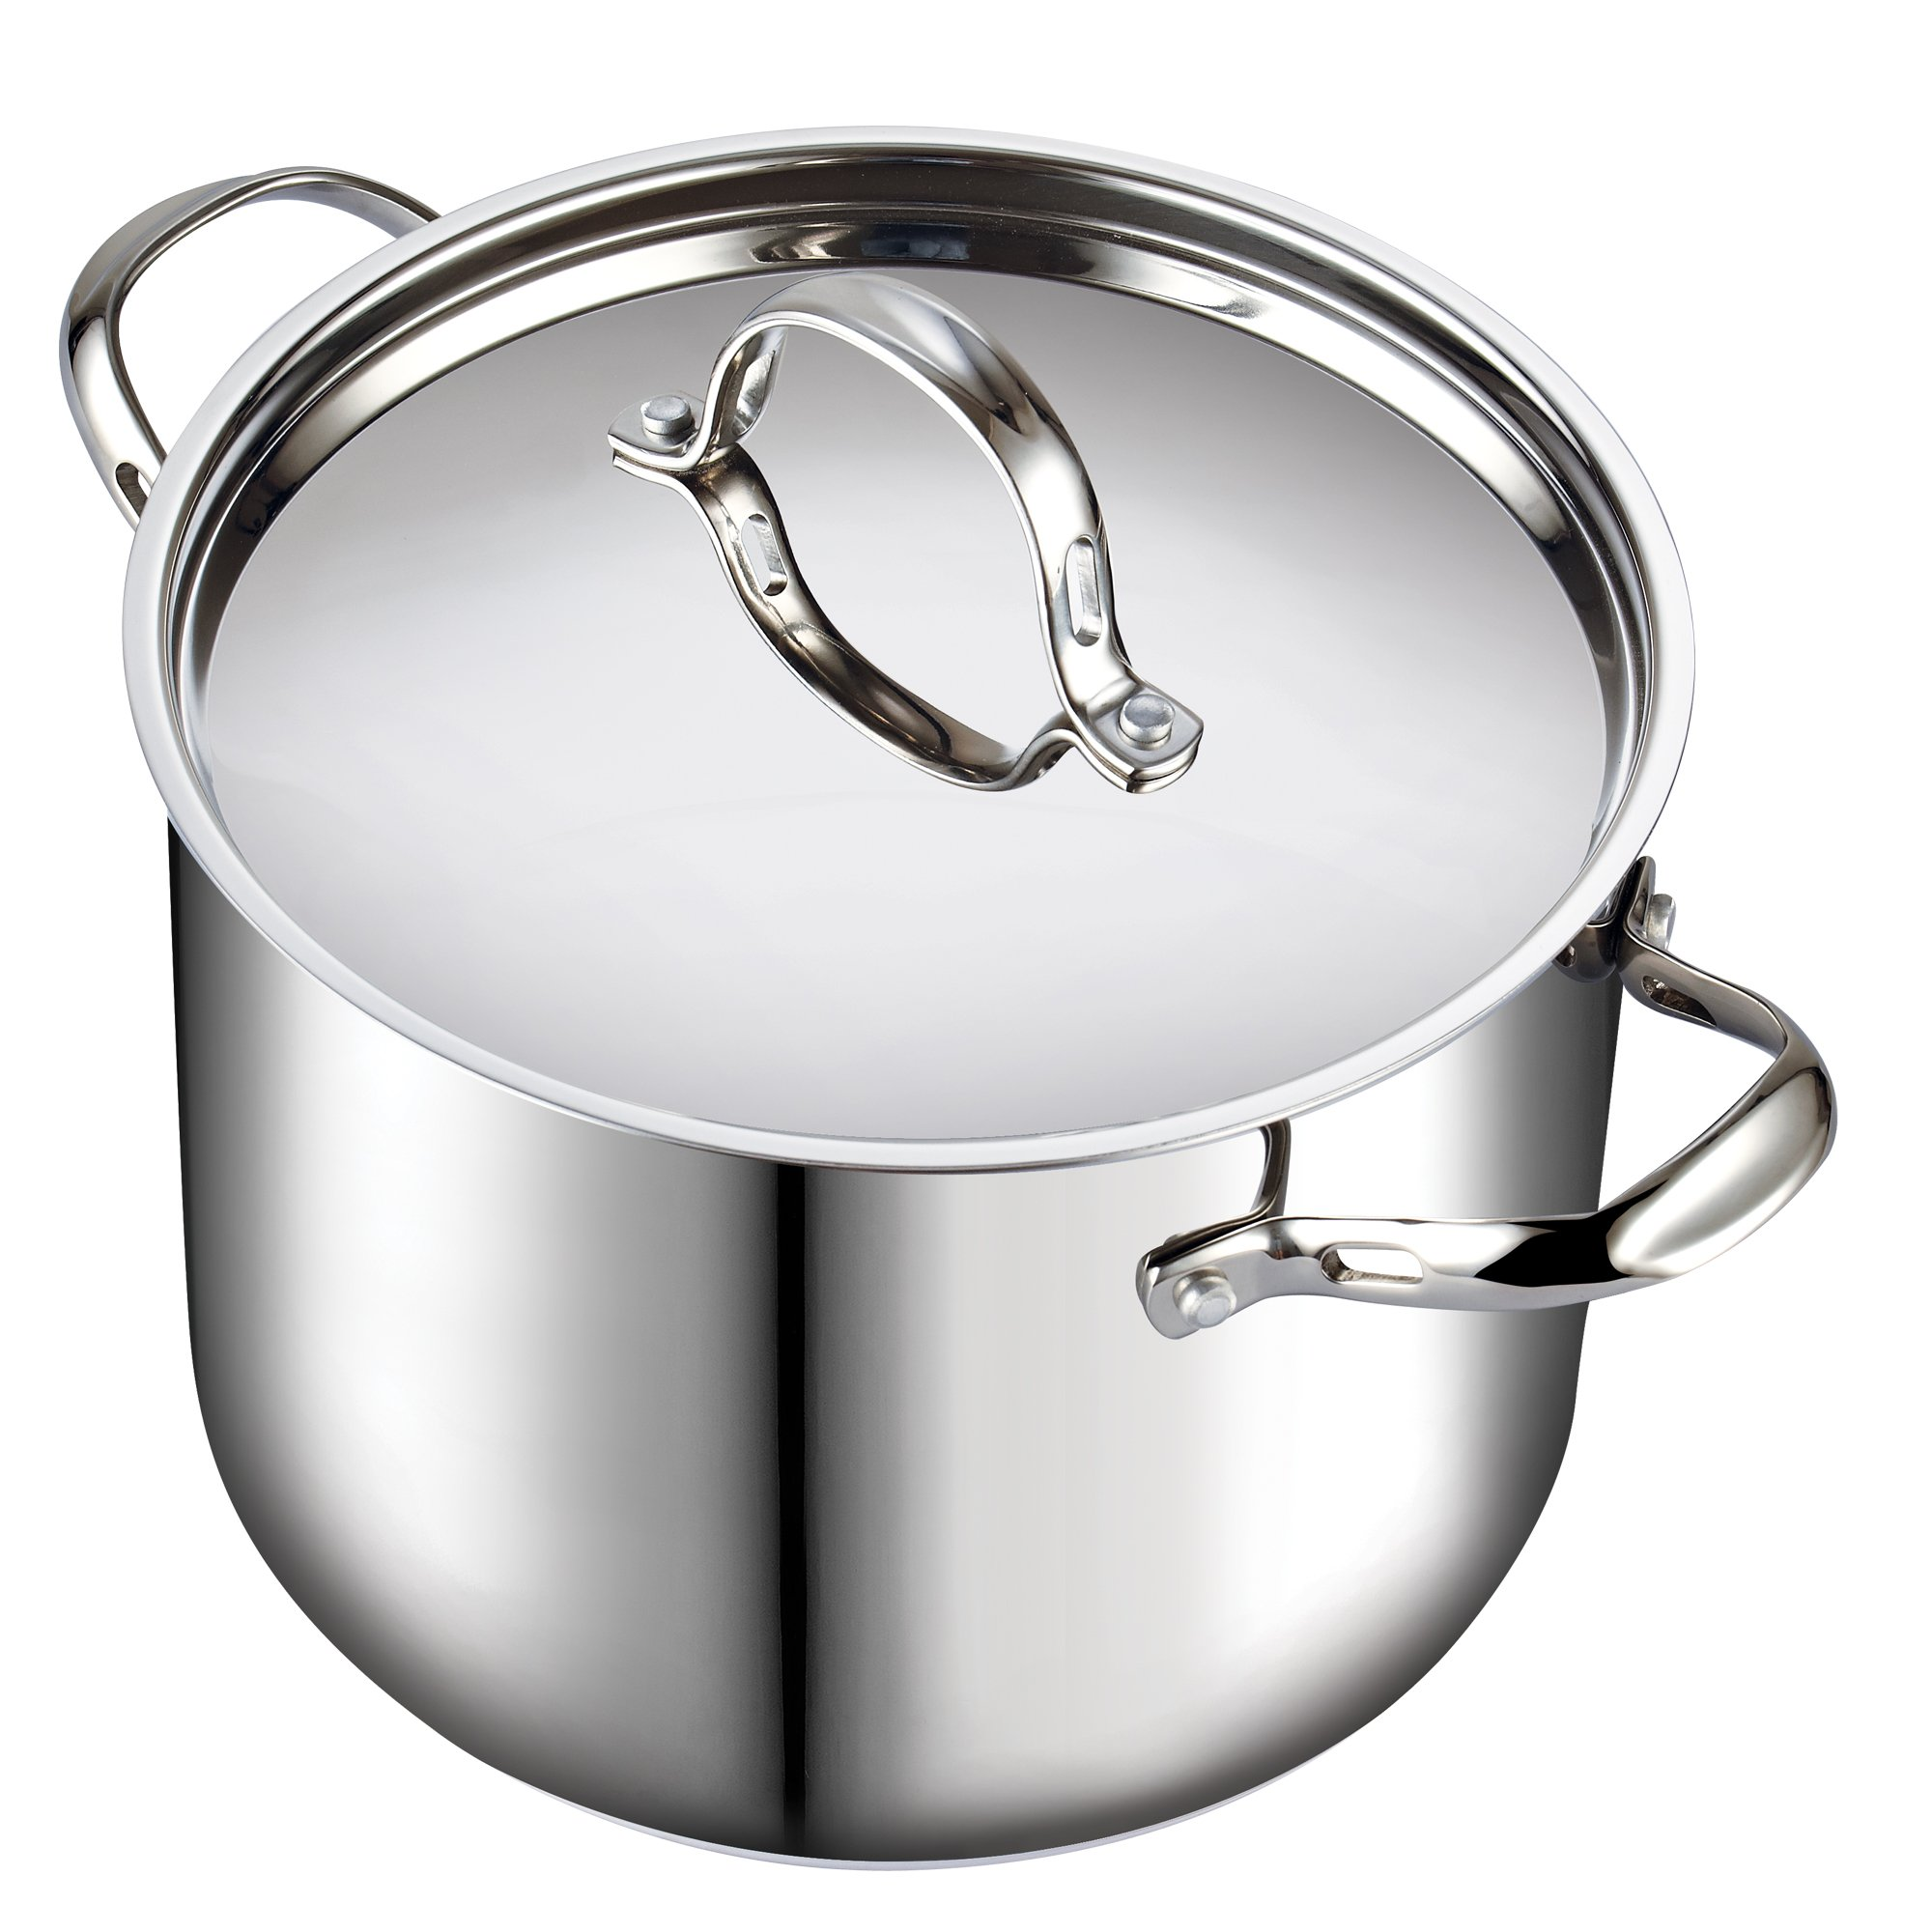 Cooks Standard 02520 Quart Classic Stainless Steel Stockpot with Lid, 12-QT, Silver by Cooks Standard